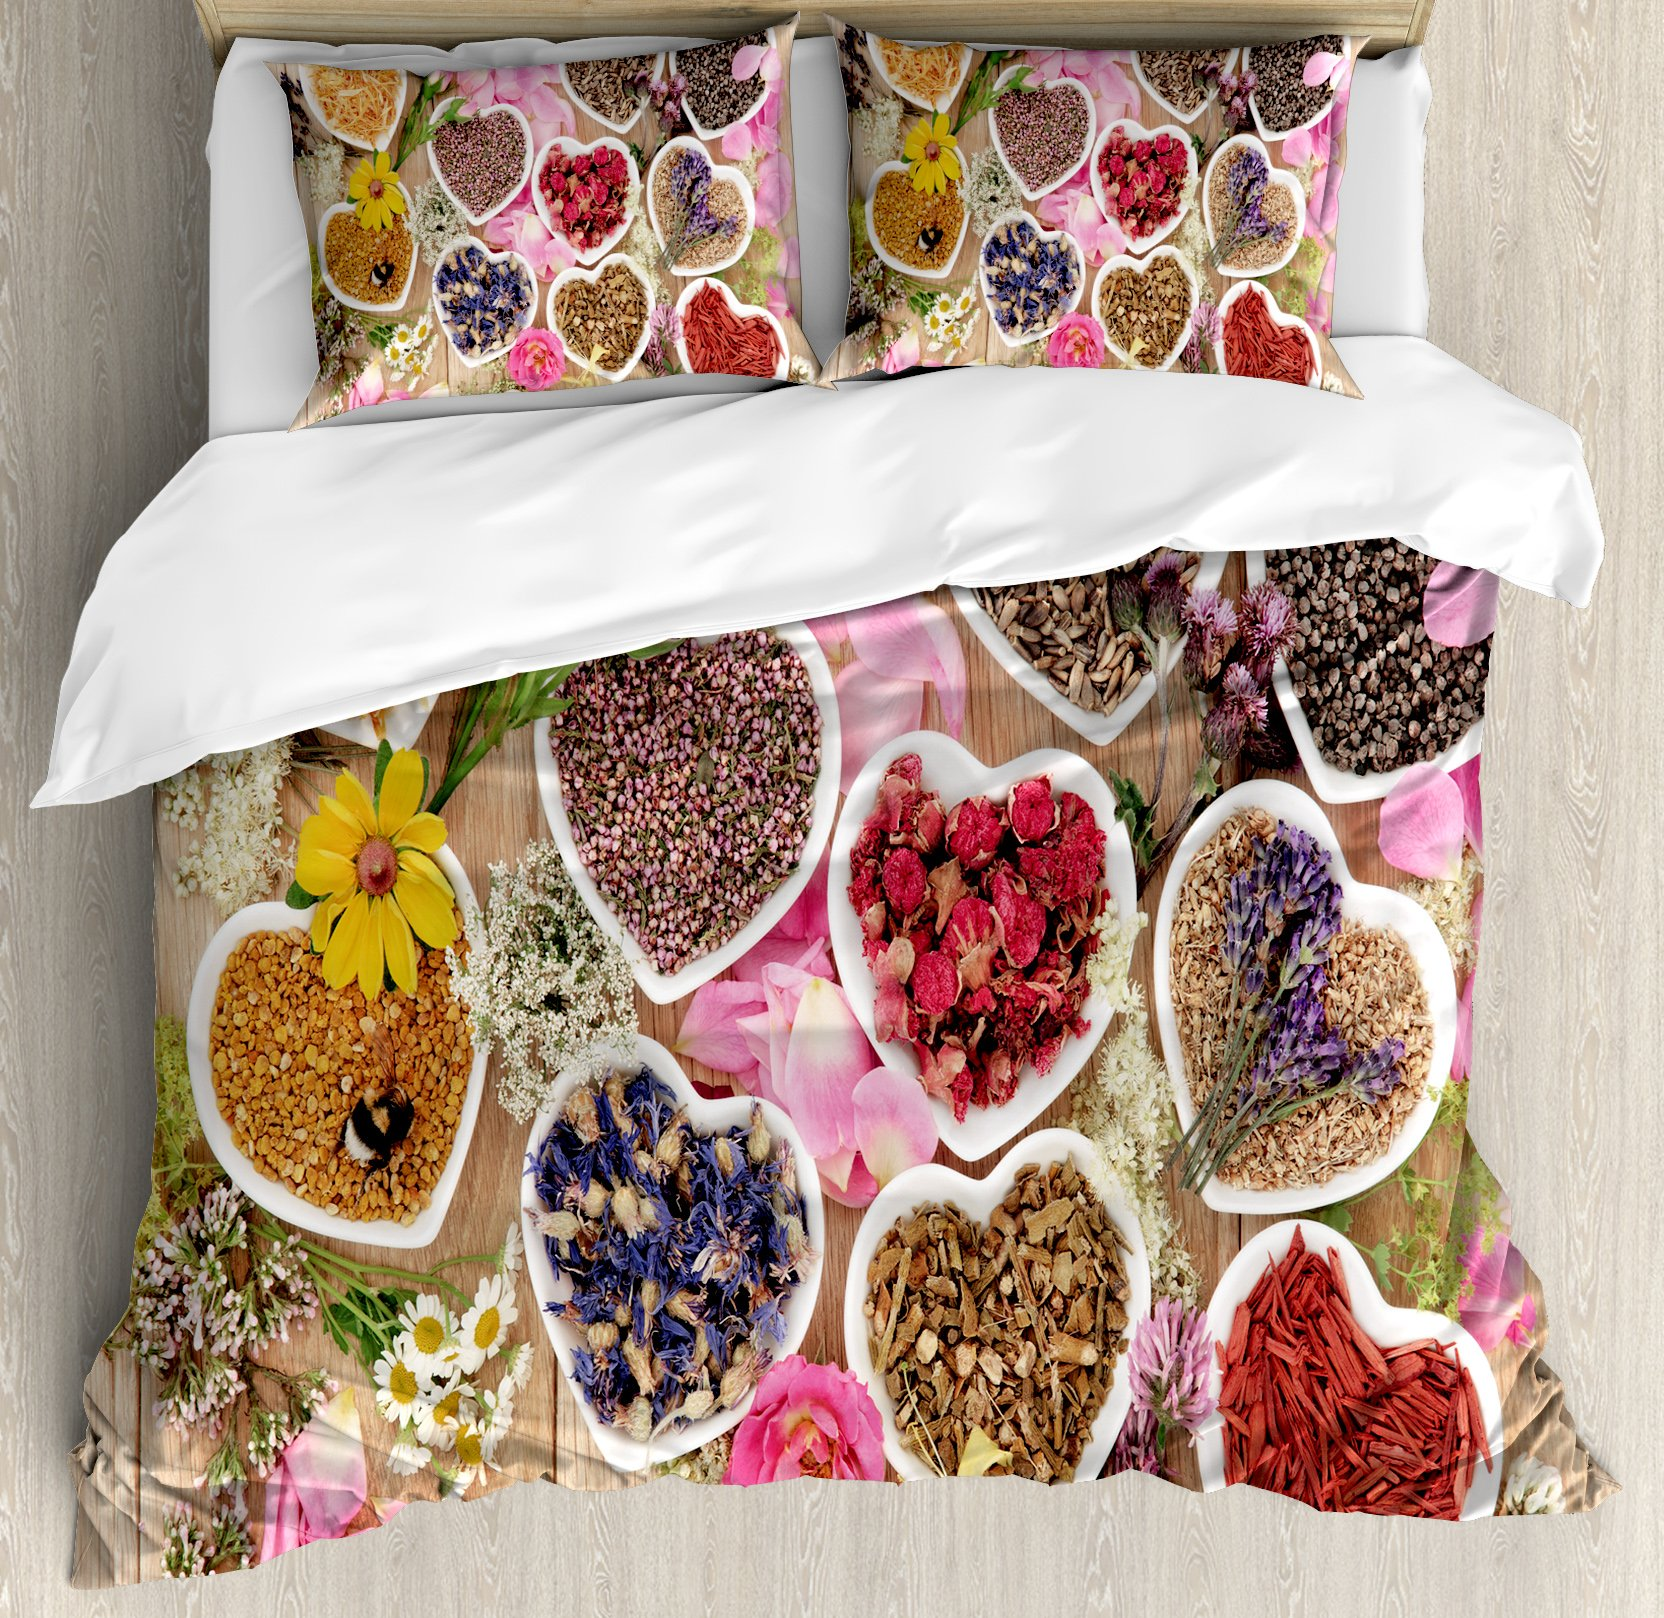 Floral Duvet Cover Set Queen Size by Ambesonne, Healing Herbs Heart Shaped Bowls Flower Petals on Wooden Planks Print Healthcare, Decorative 3 Piece Bedding Set with 2 Pillow Shams, Multicolor